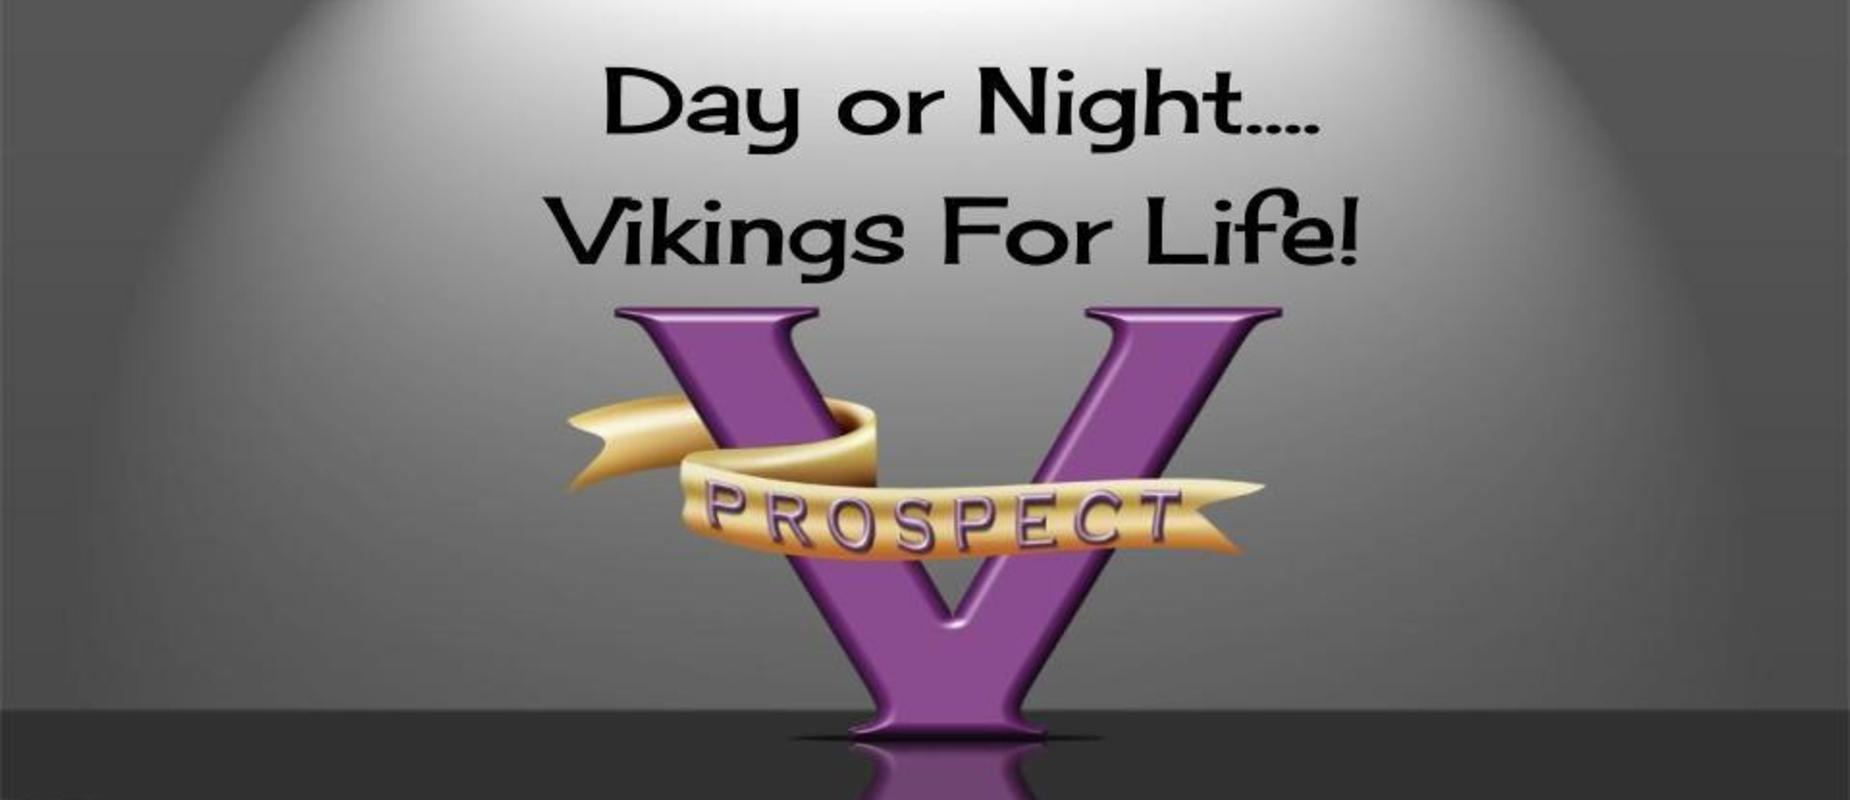 Day or night...Vikings for Life